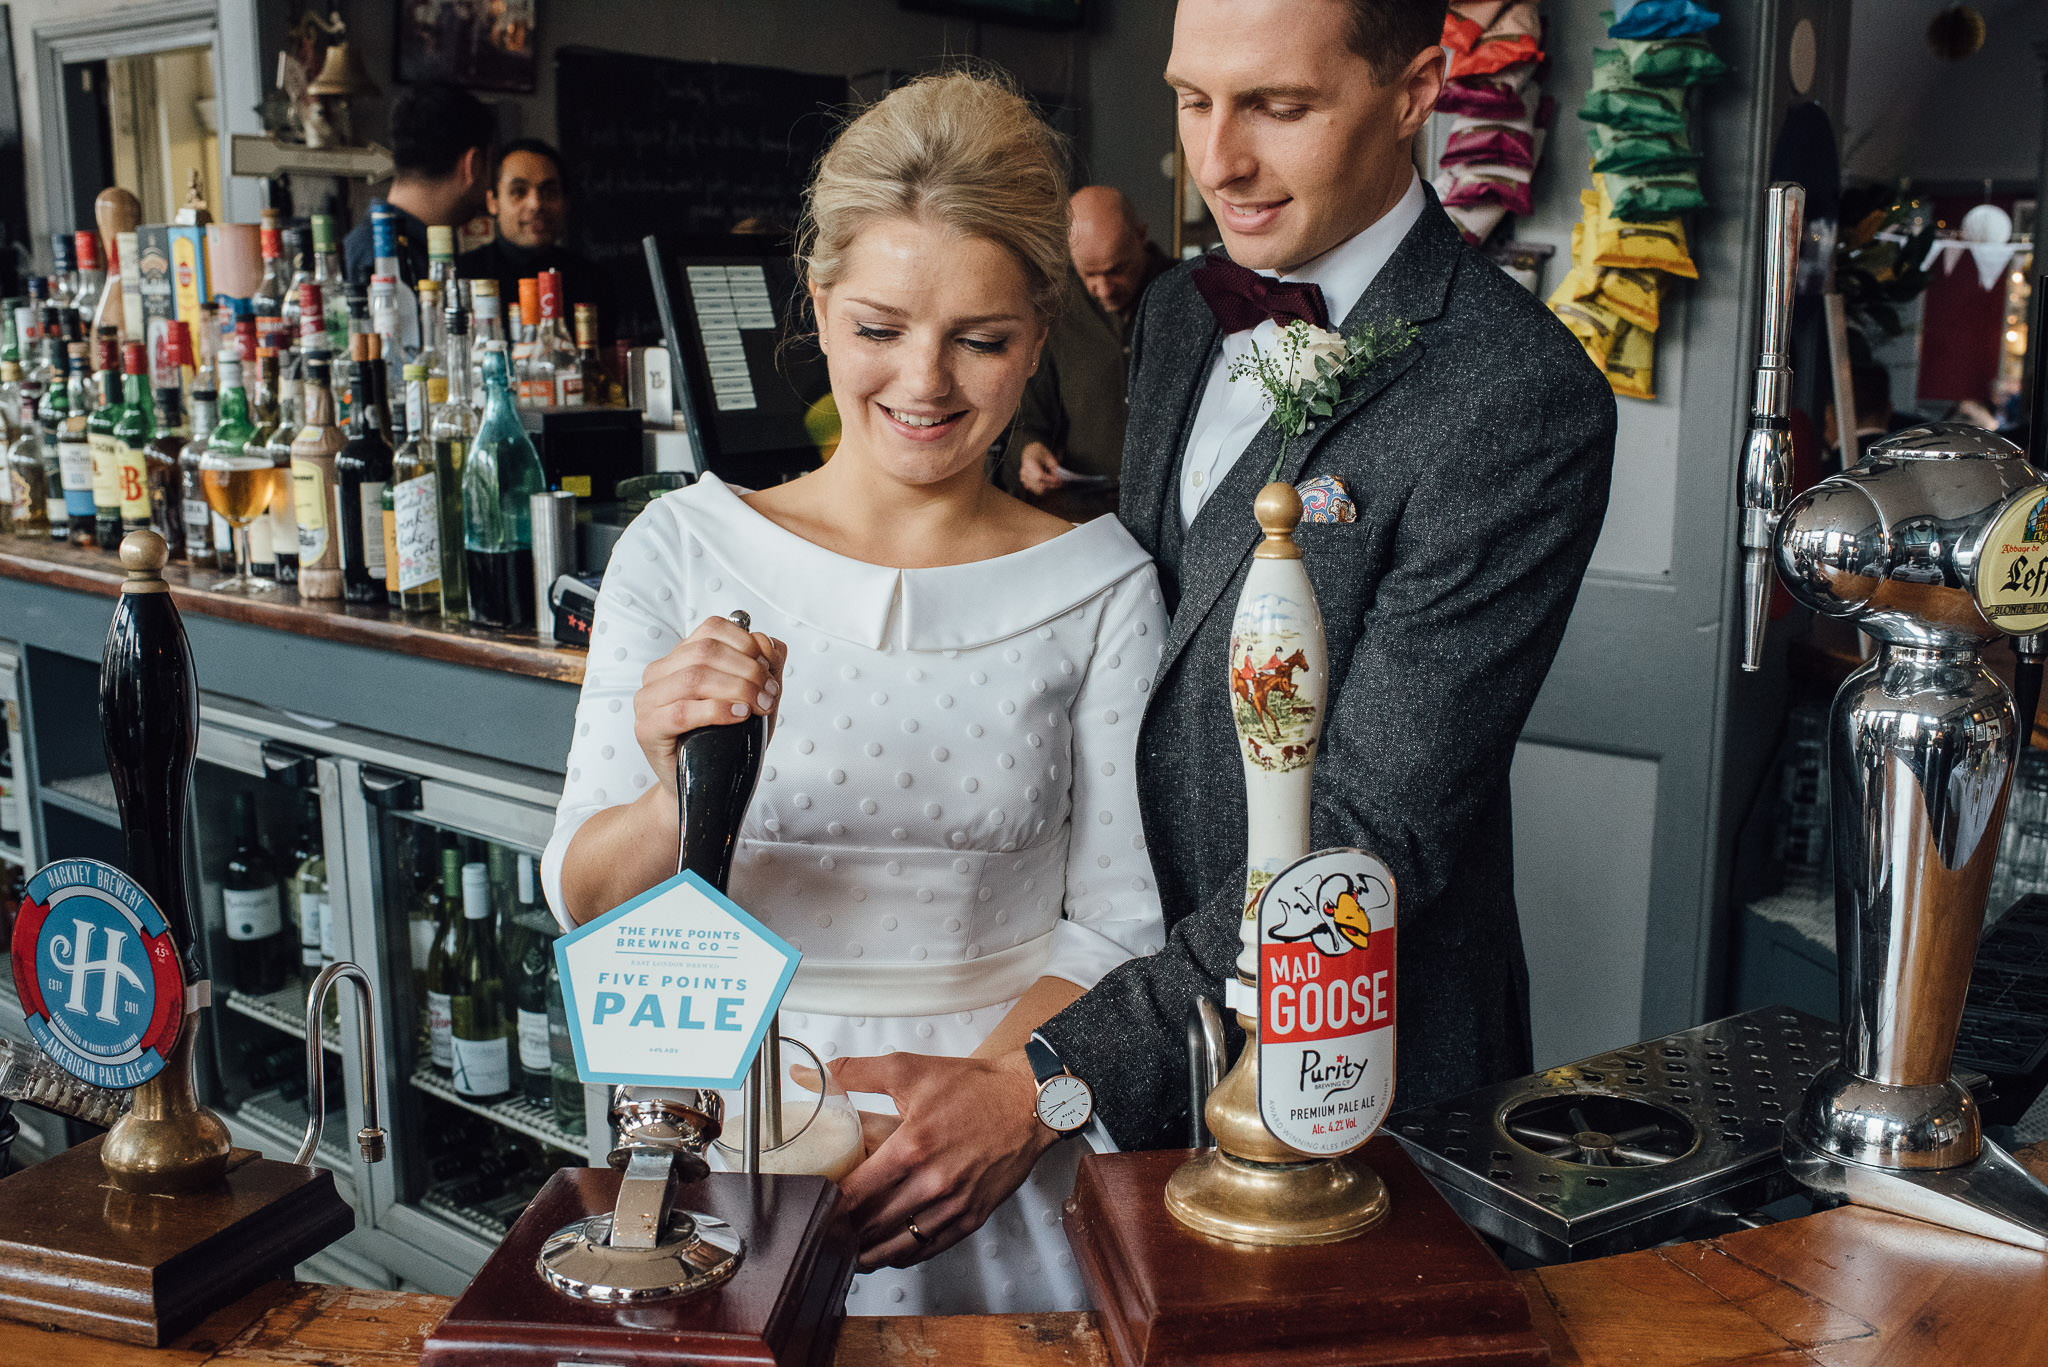 Bride pulling pint in the londesborough pub in stoke newington town hall wedding by creative and alternative london wedding photographer the shannons photography